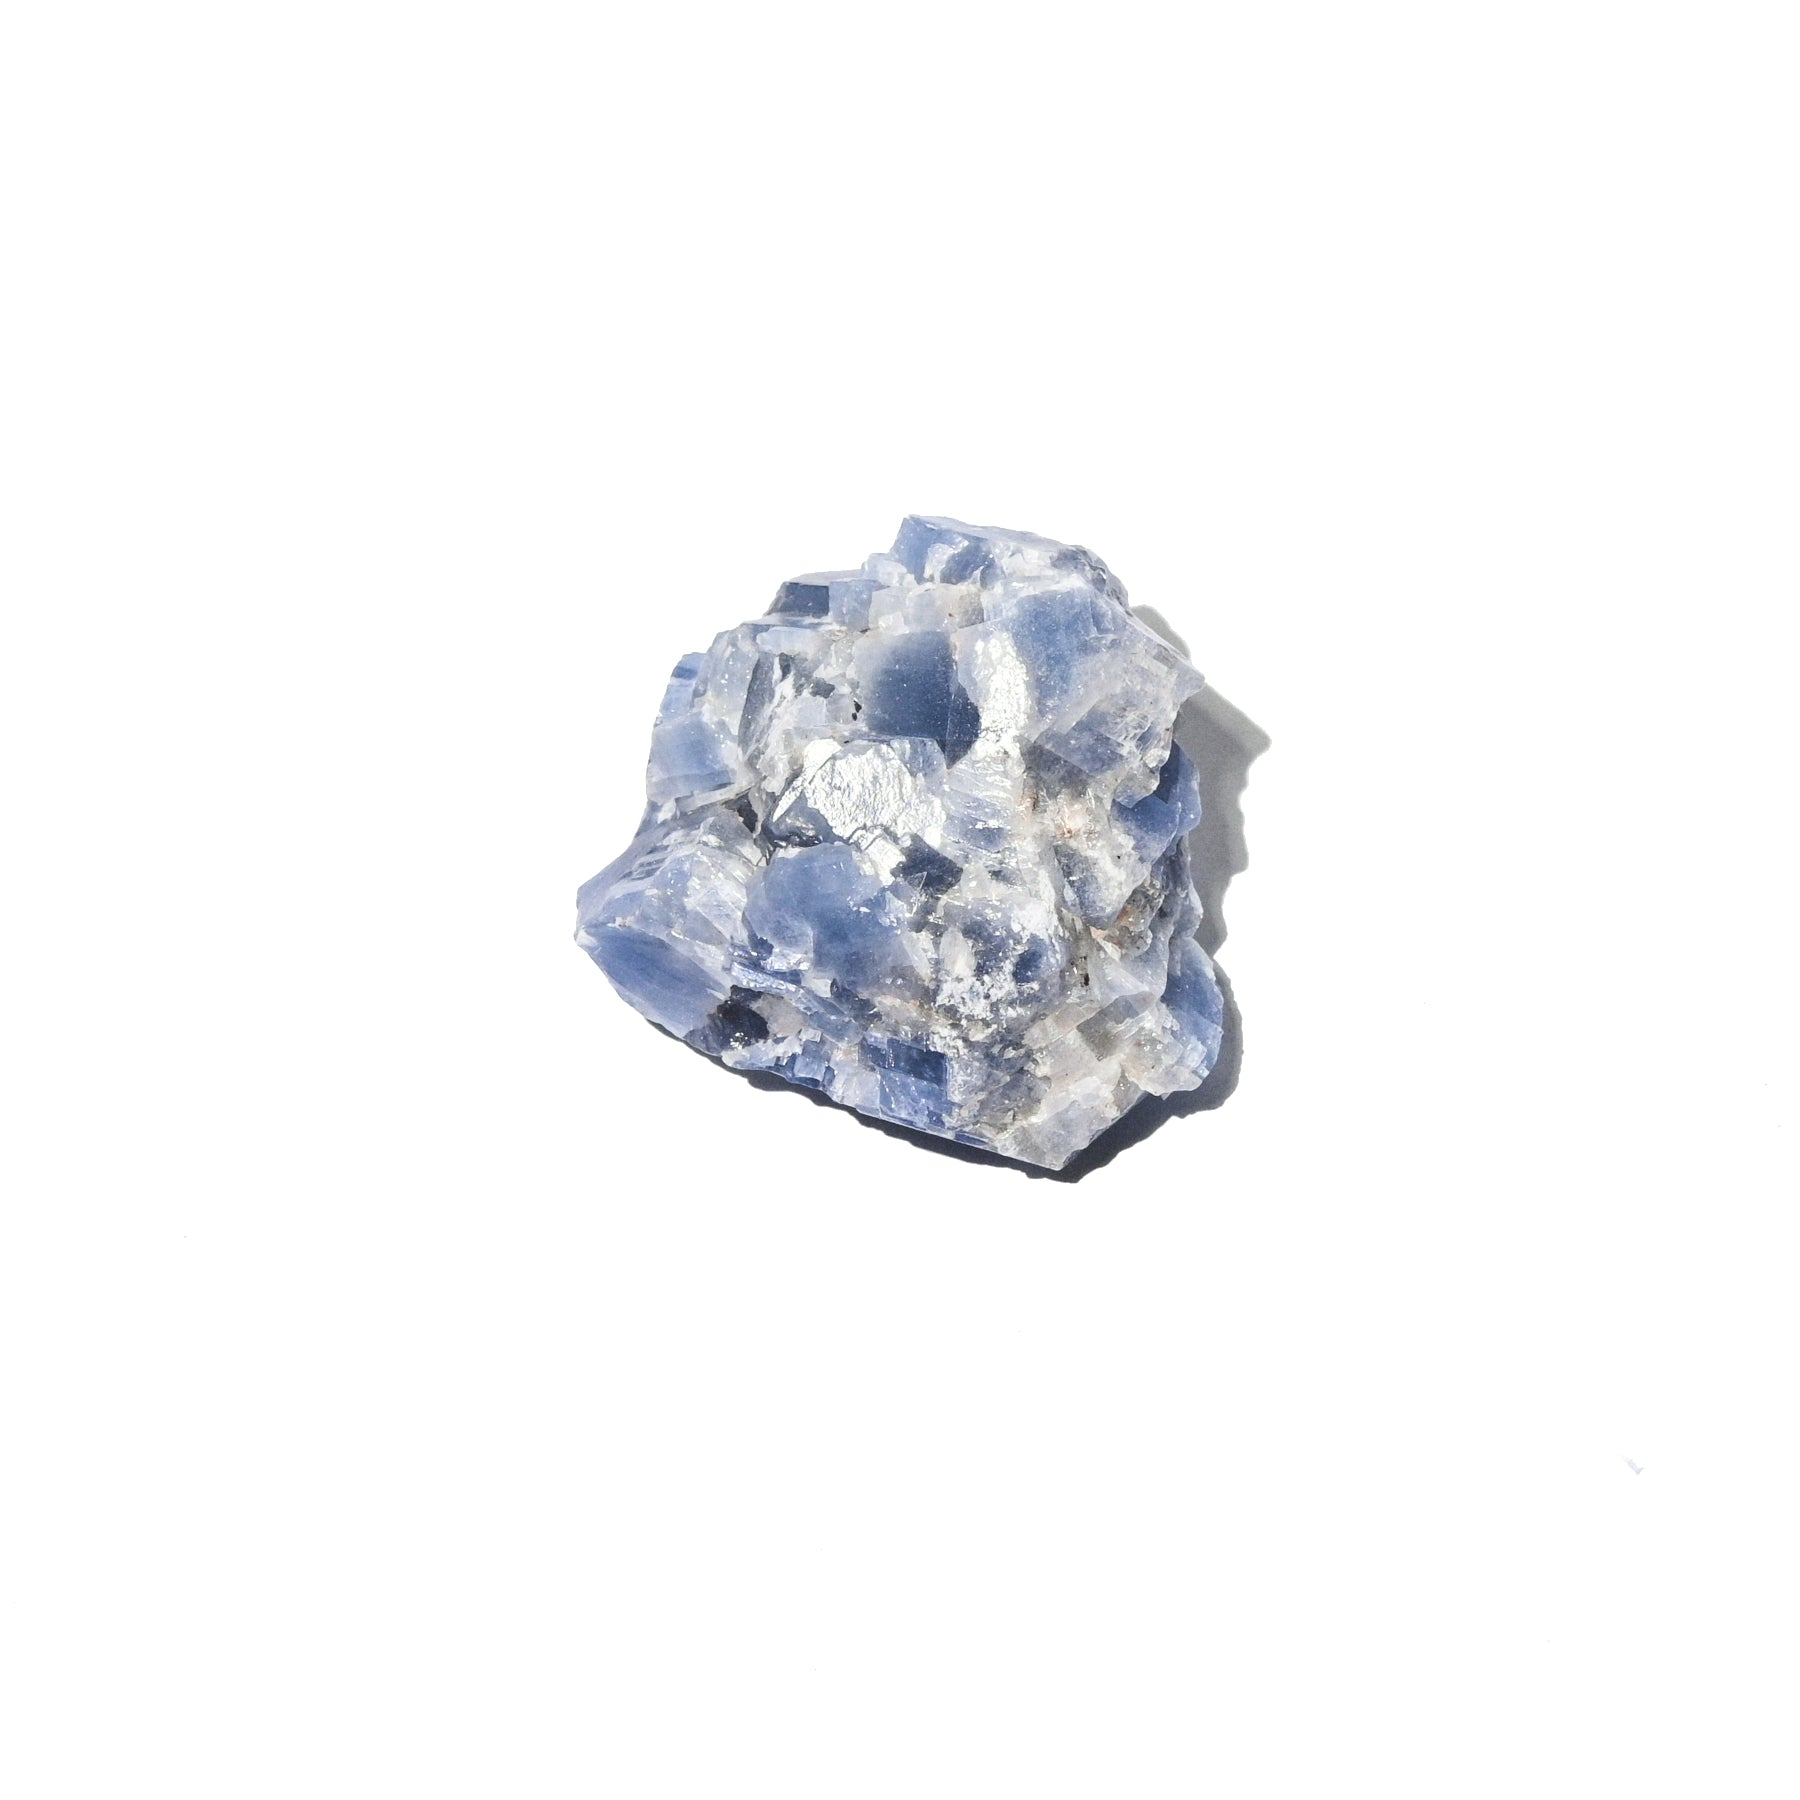 Blue Calcite Rough